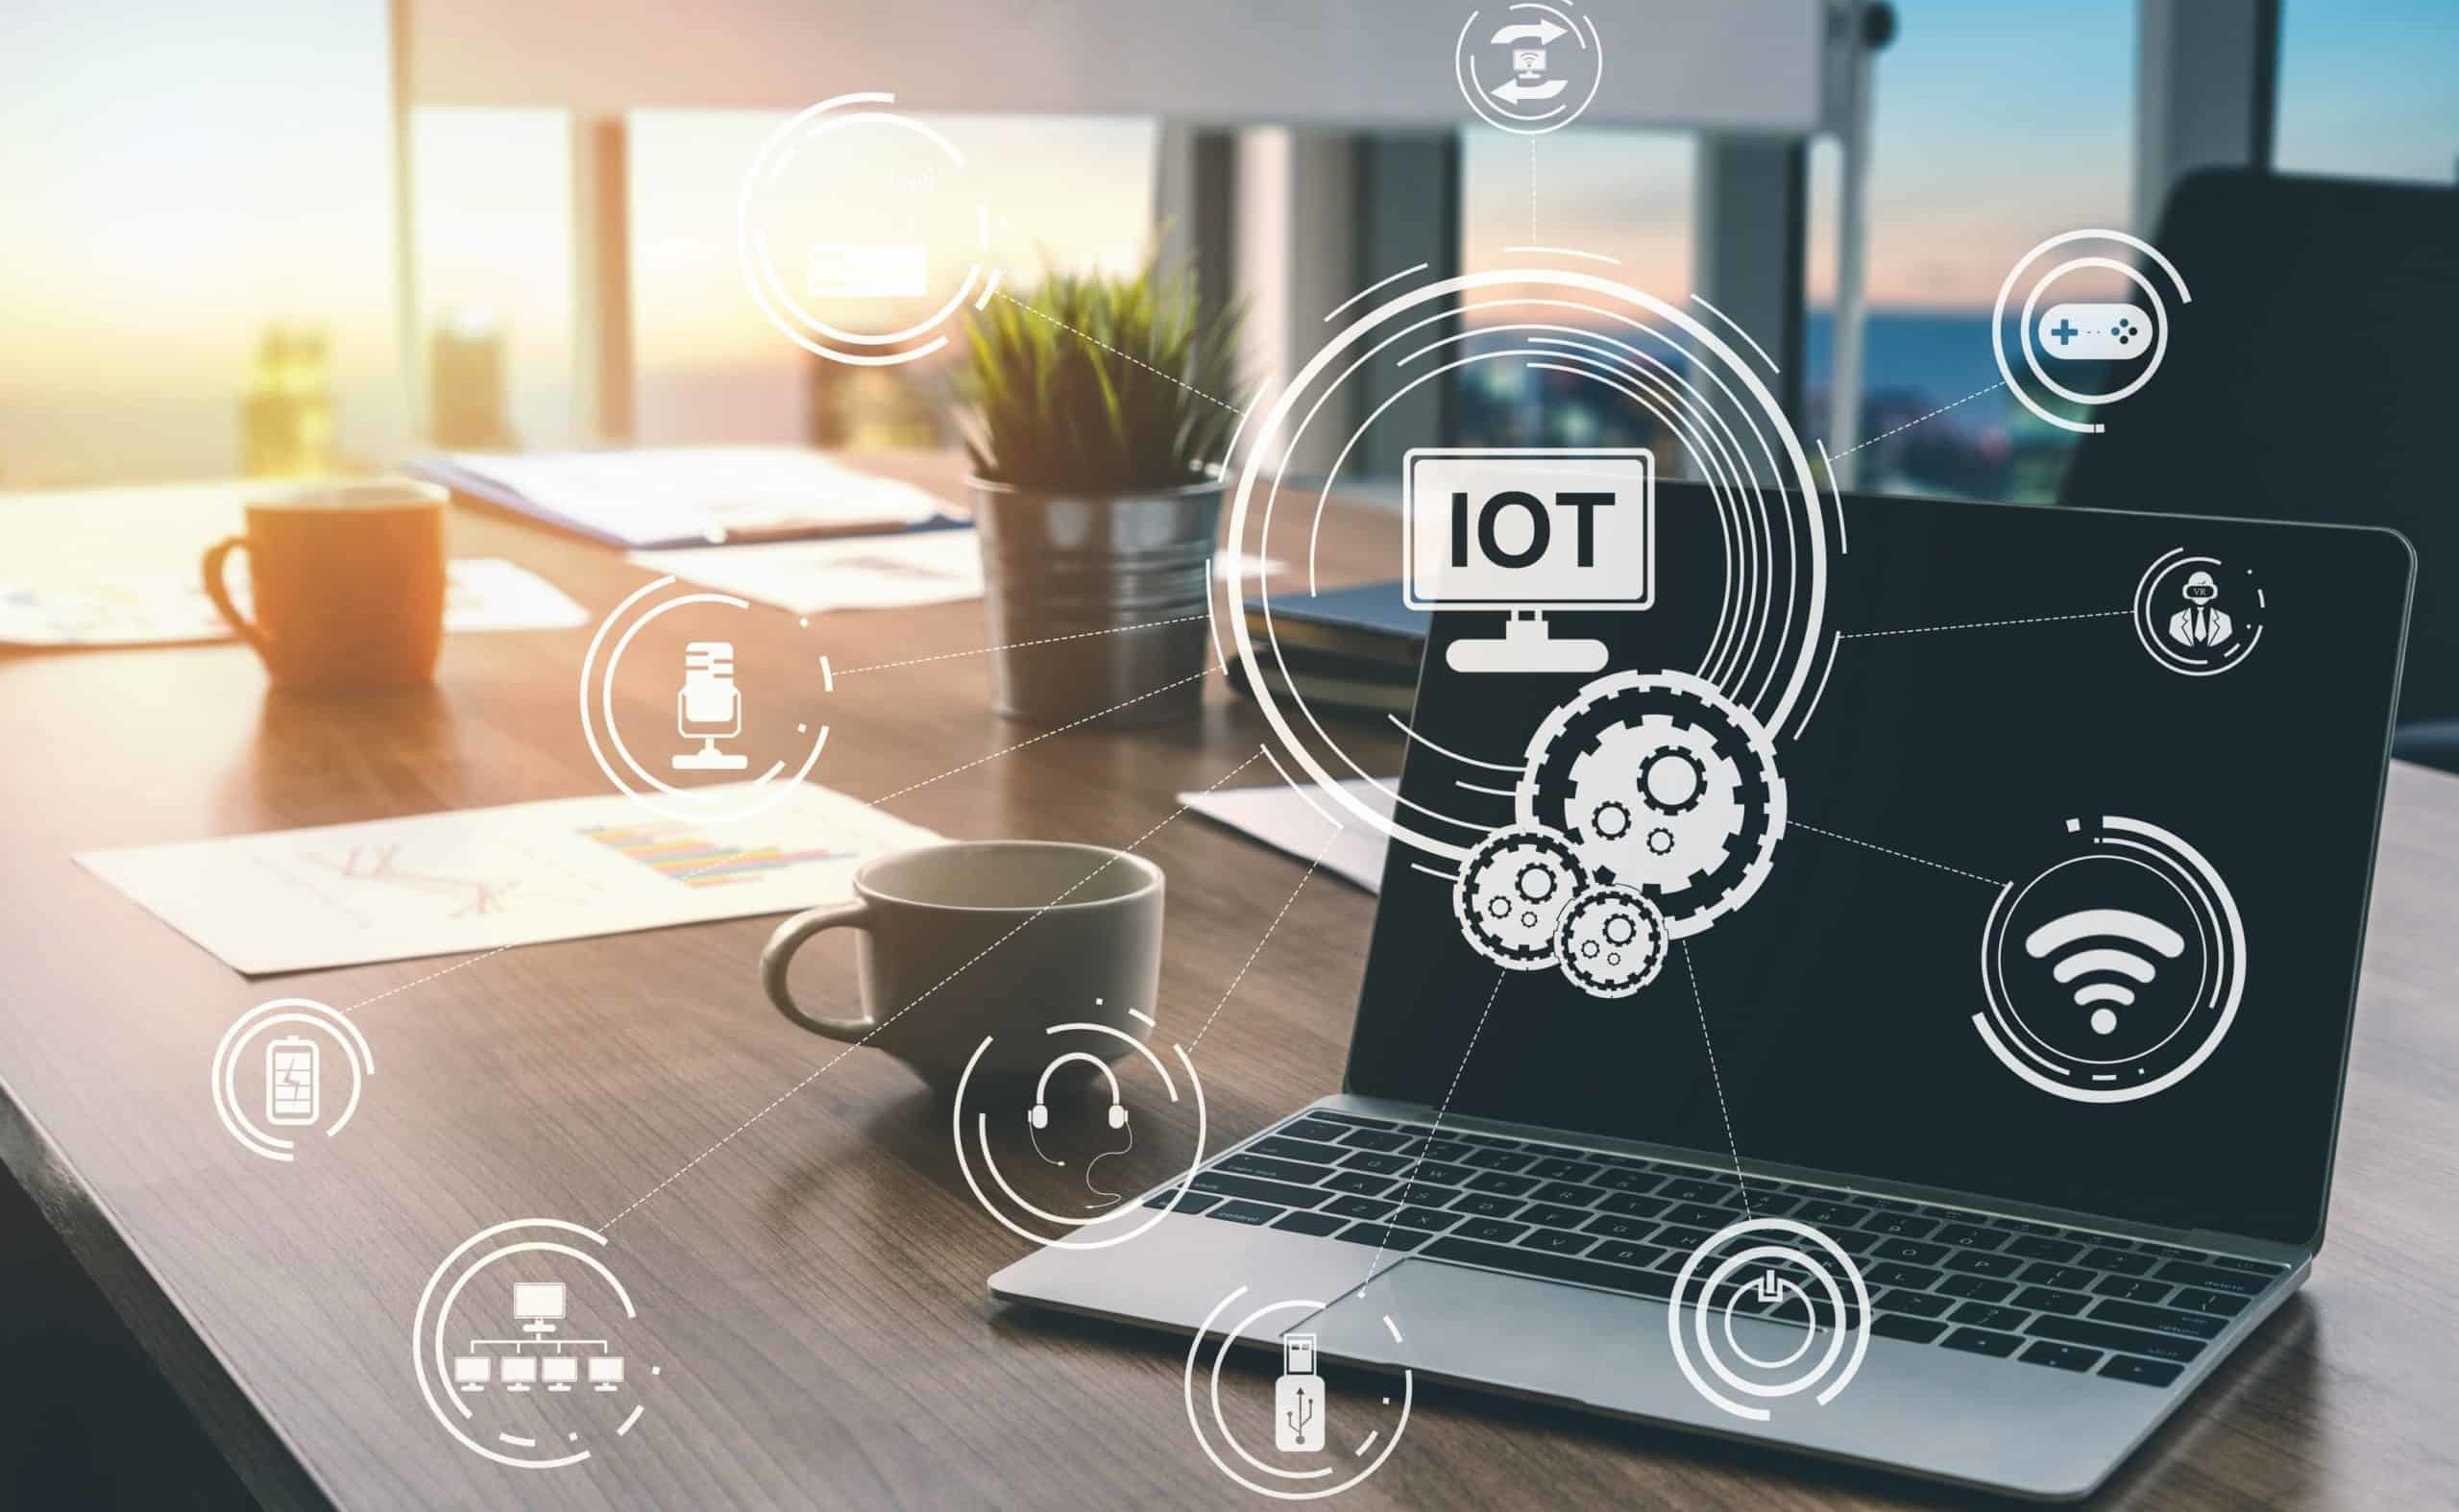 IoT and telecoms